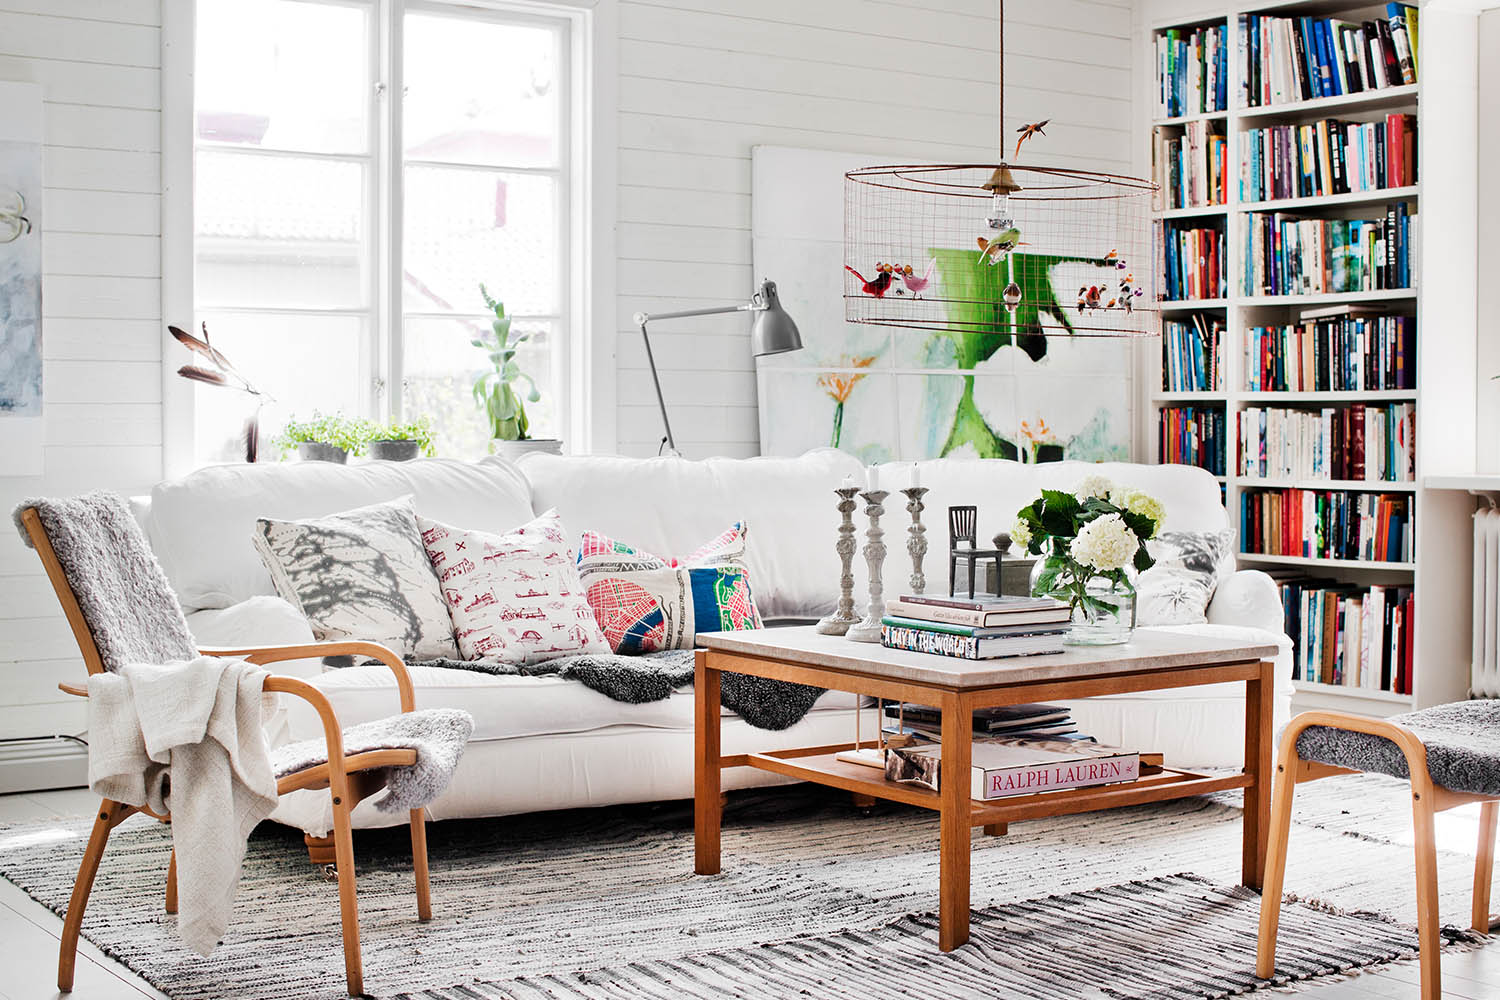 Decorating 101: The Ultimate Guide To Living Room Decor